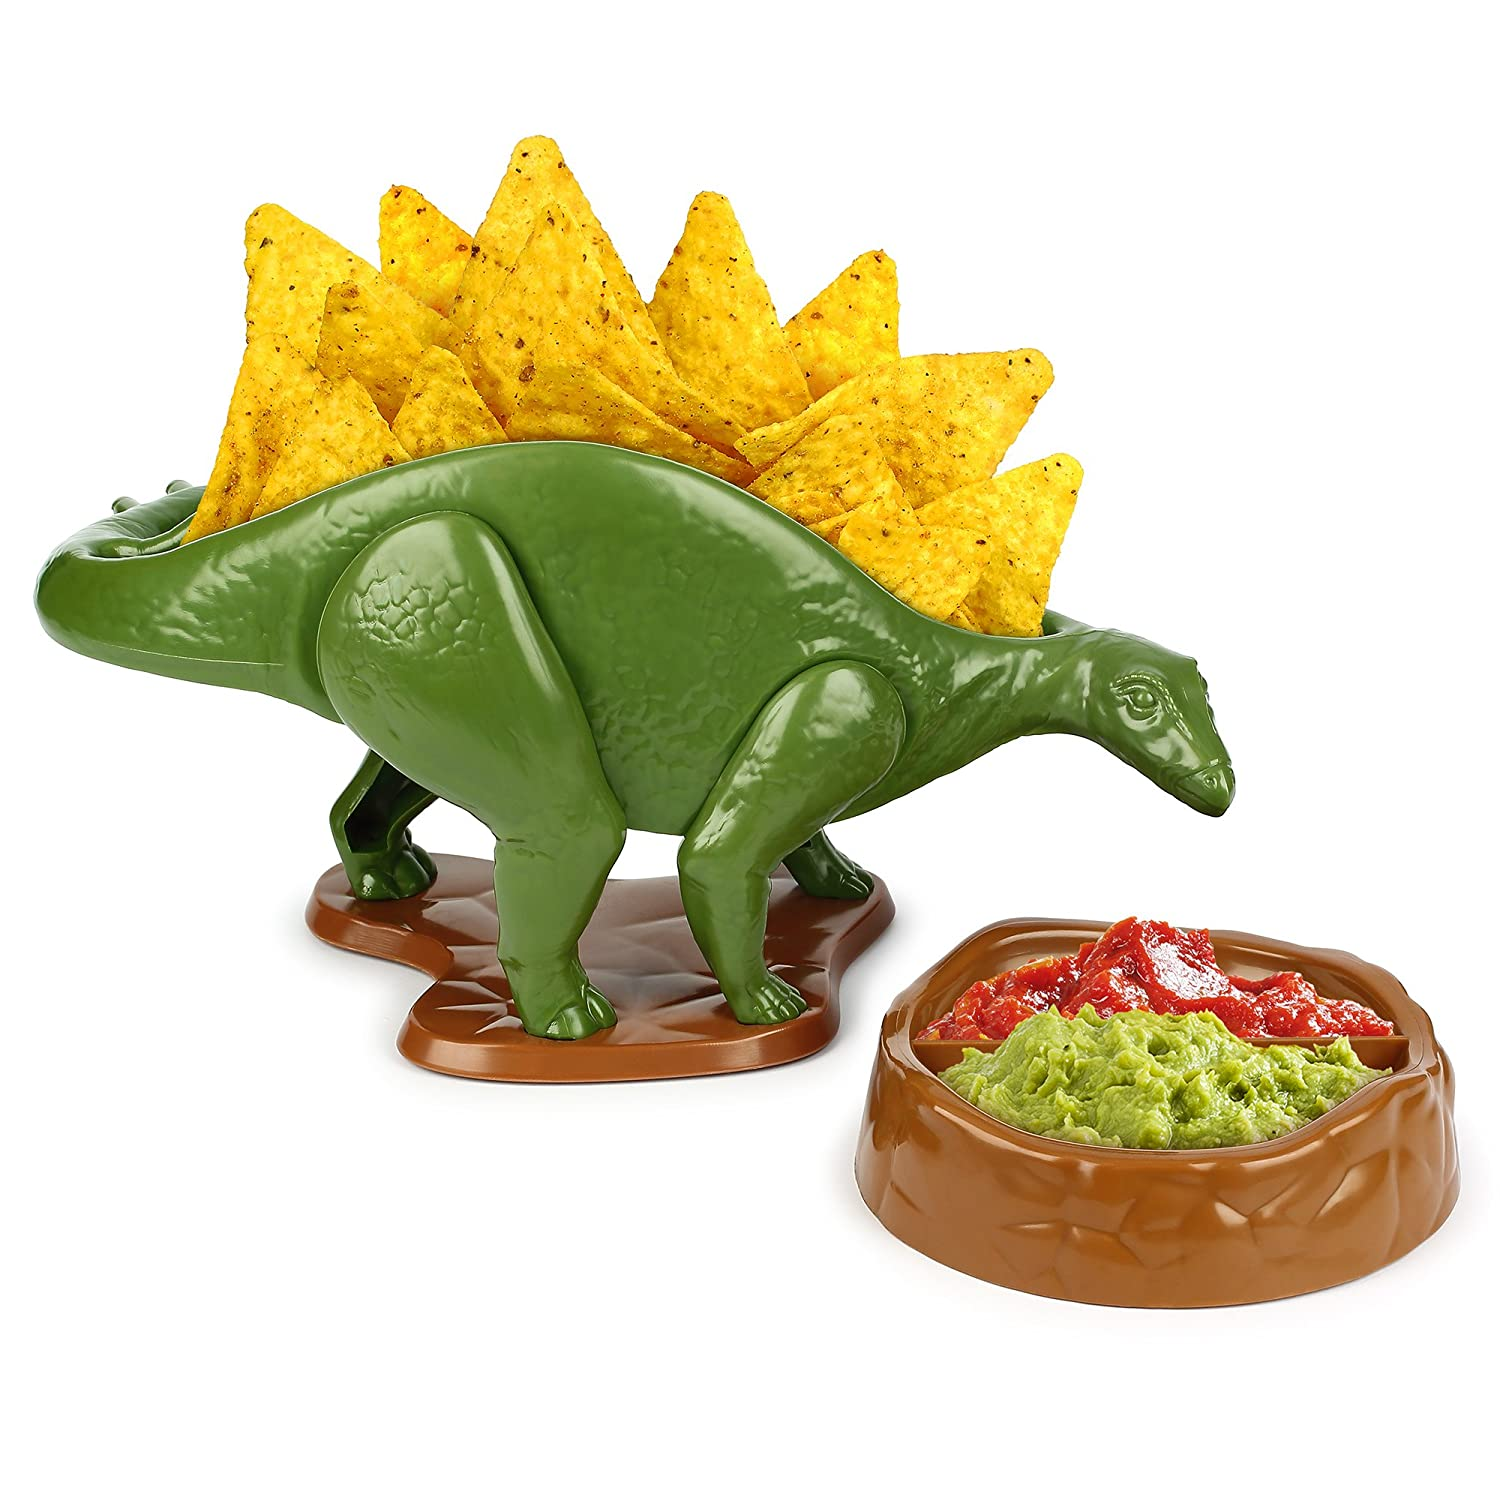 Barbuzzo UTU3GI0128 Nachosaurus Bowl & Dip Chip and Dip Serving Set and Snack Bowl, Green